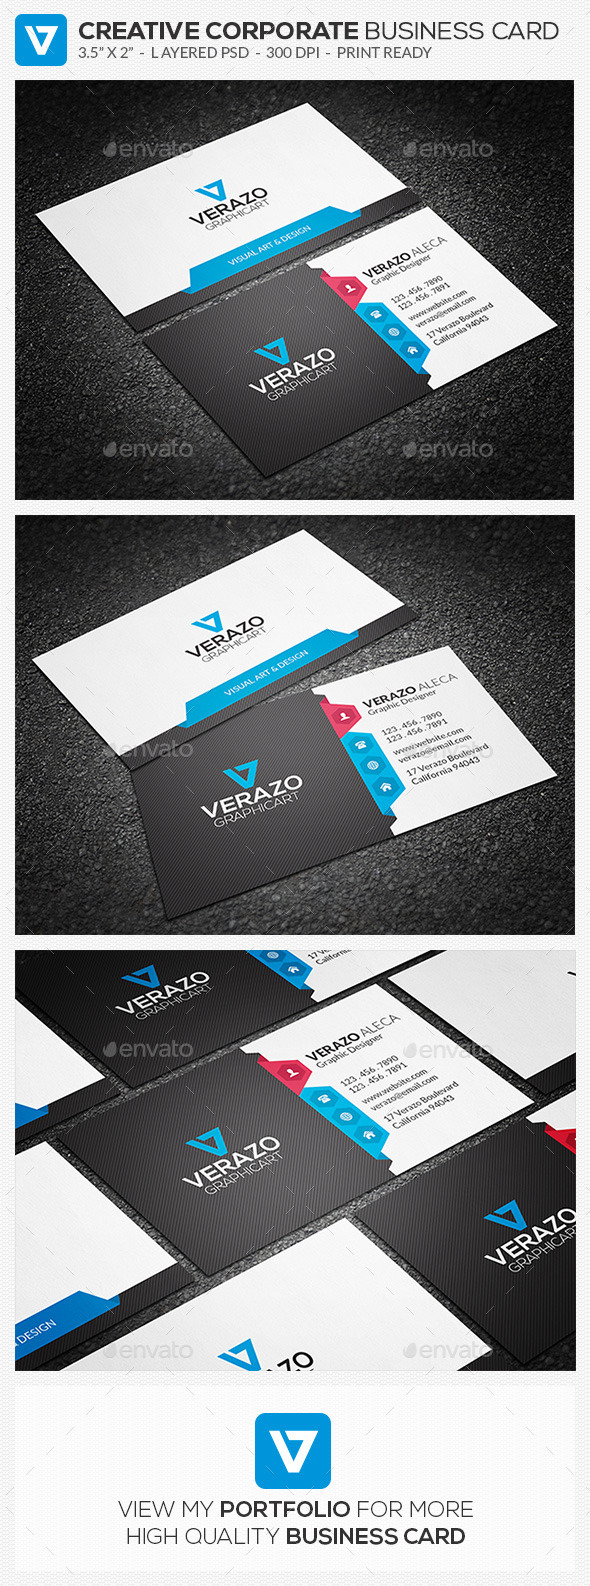 Clean & Creative Corporate Business Card 69 - Corporate Business Cards